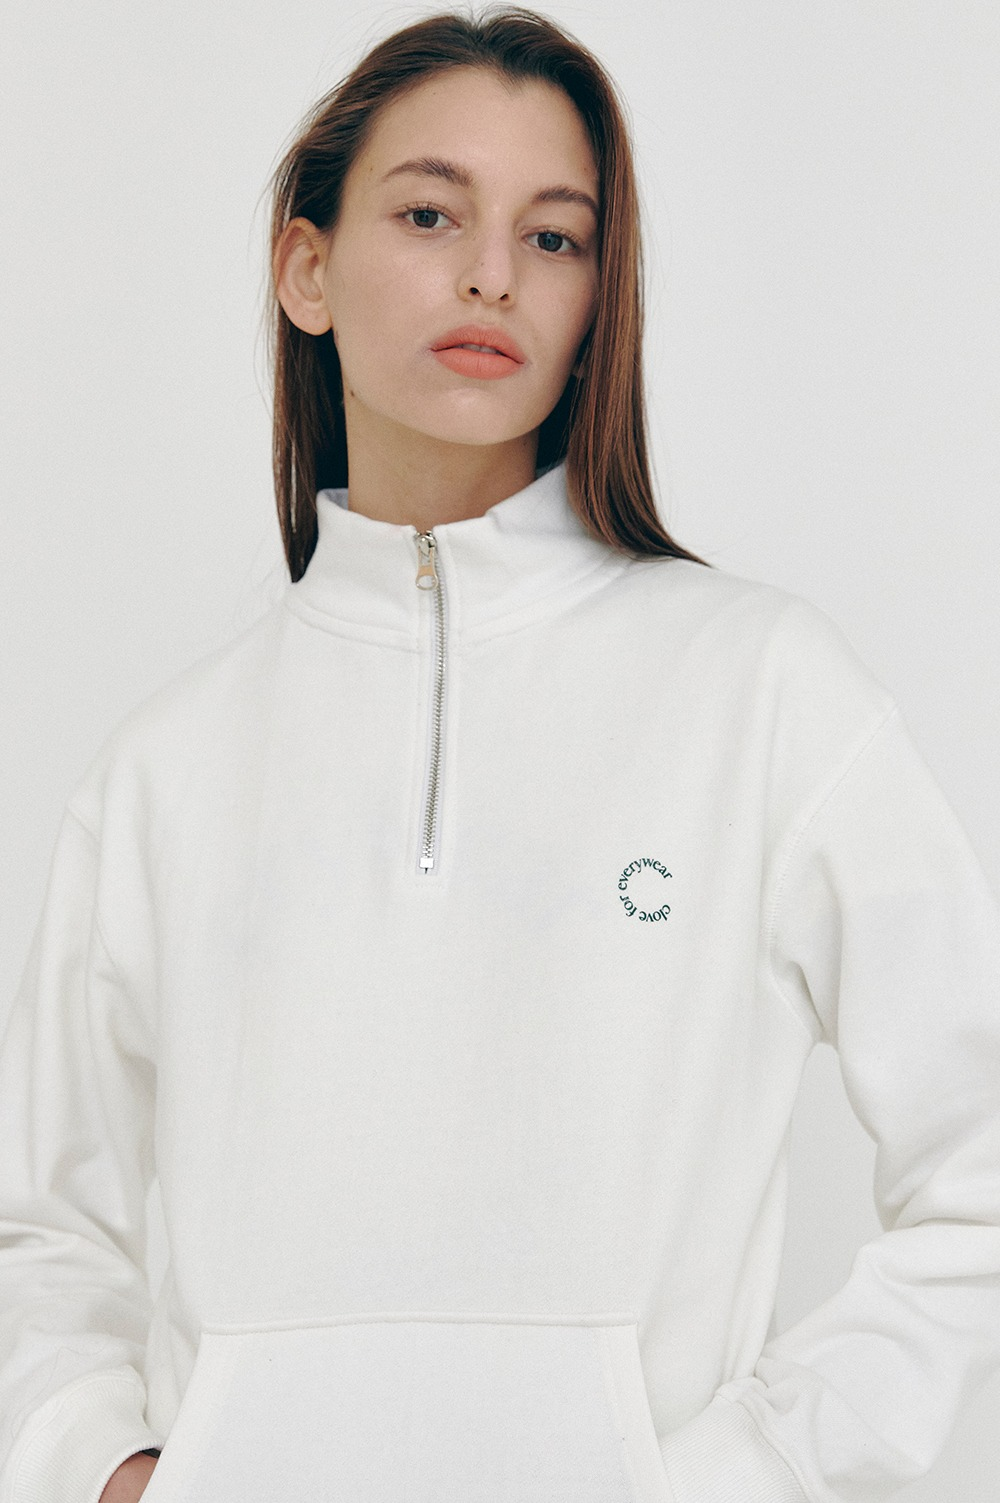 clove - [SS21 clove] New Half-zip Sweatshirts White